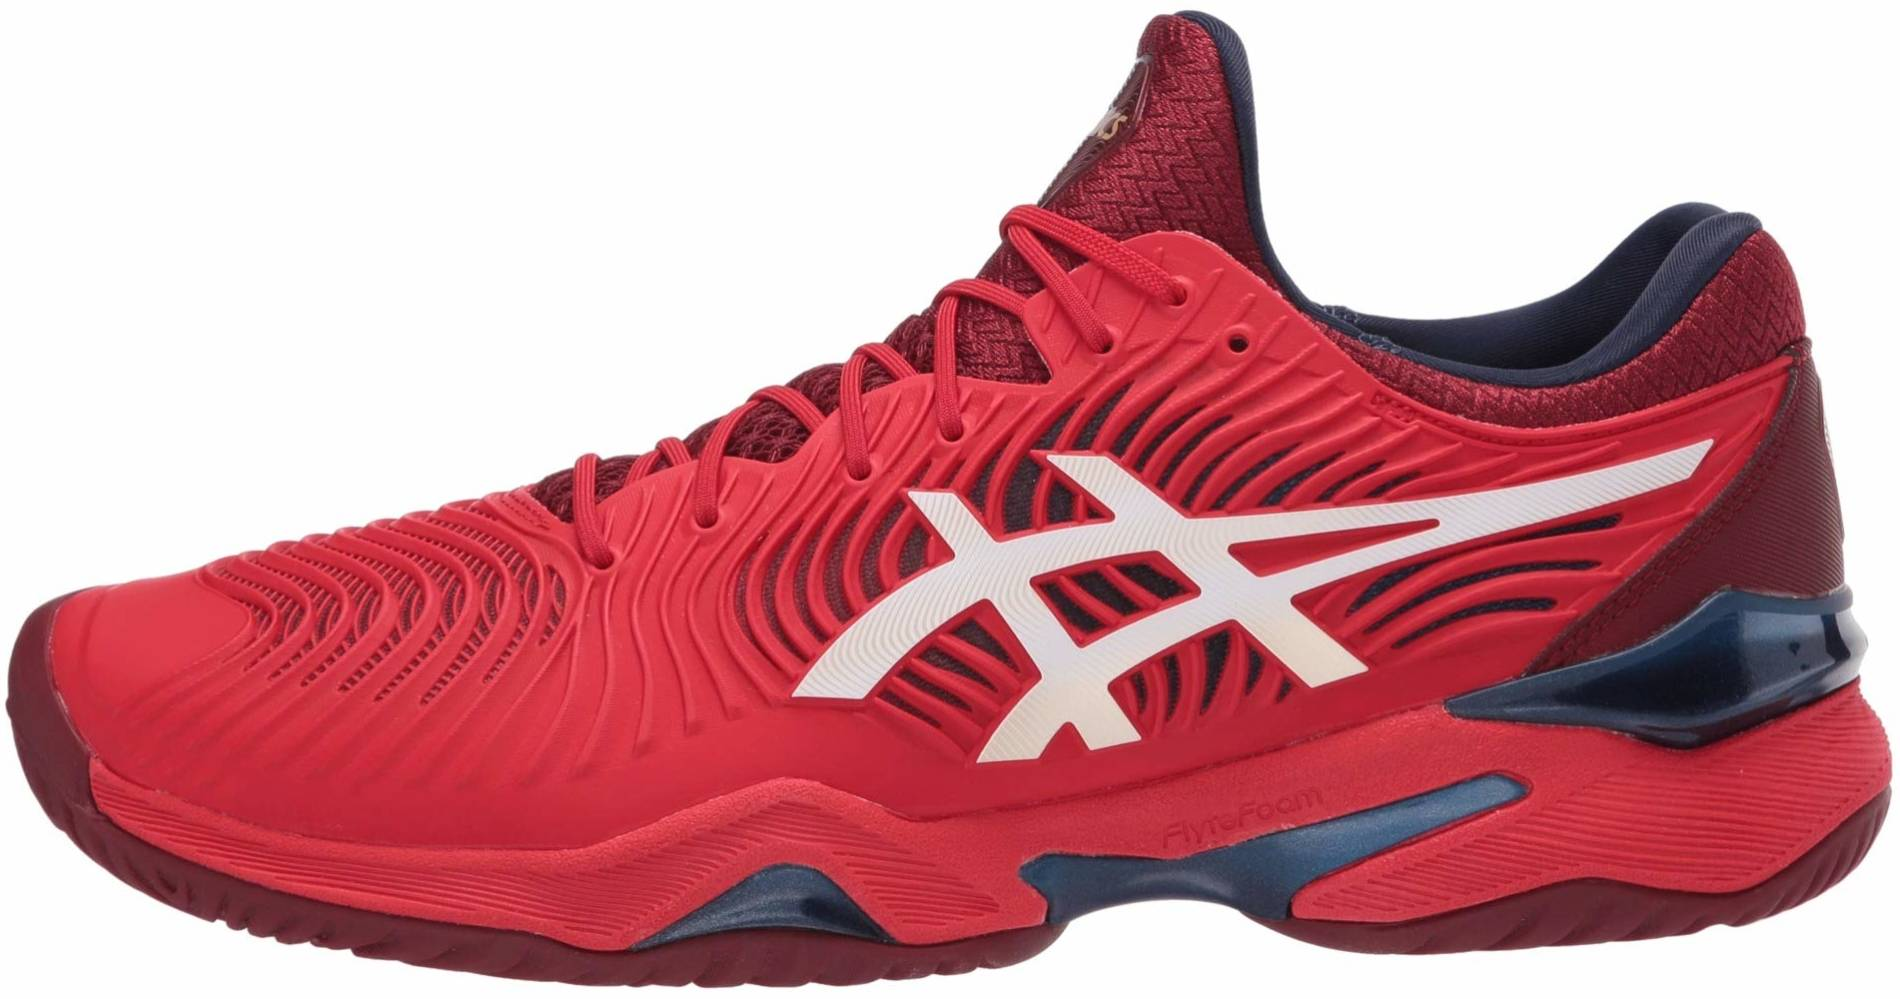 Only £78 + Review of Asics Court FF 2